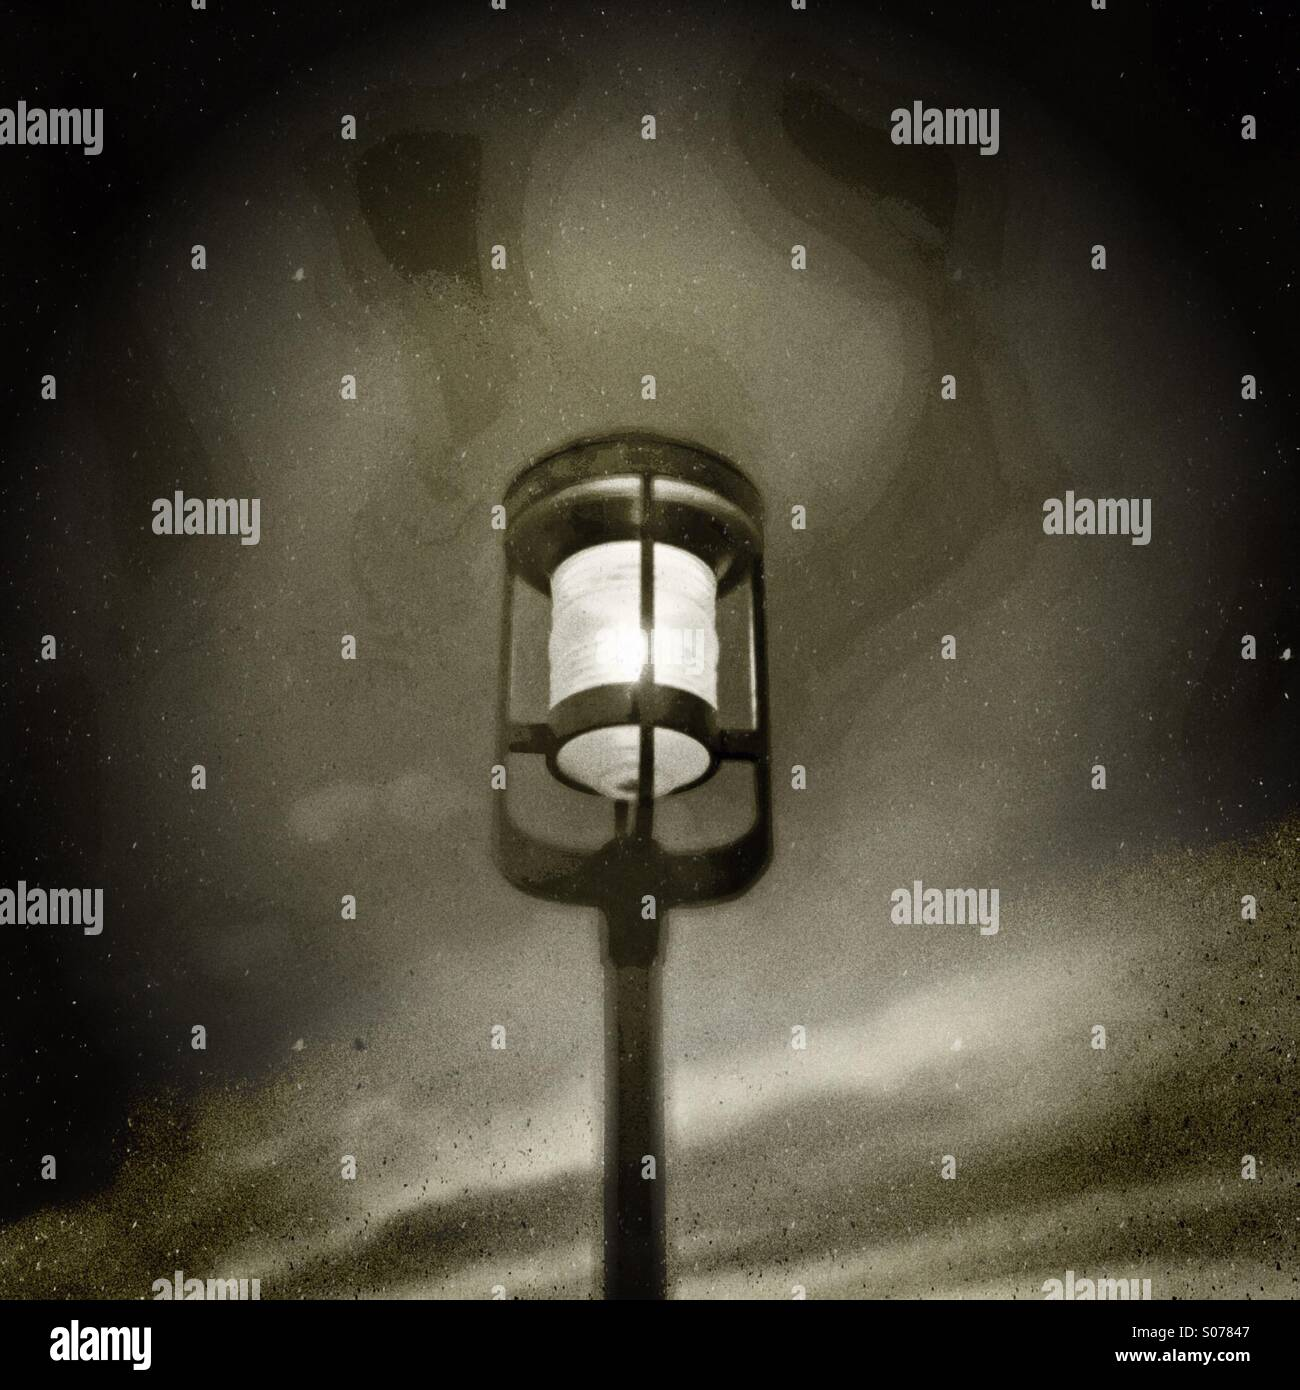 A lone lamp lights a parking lot. - Stock Image